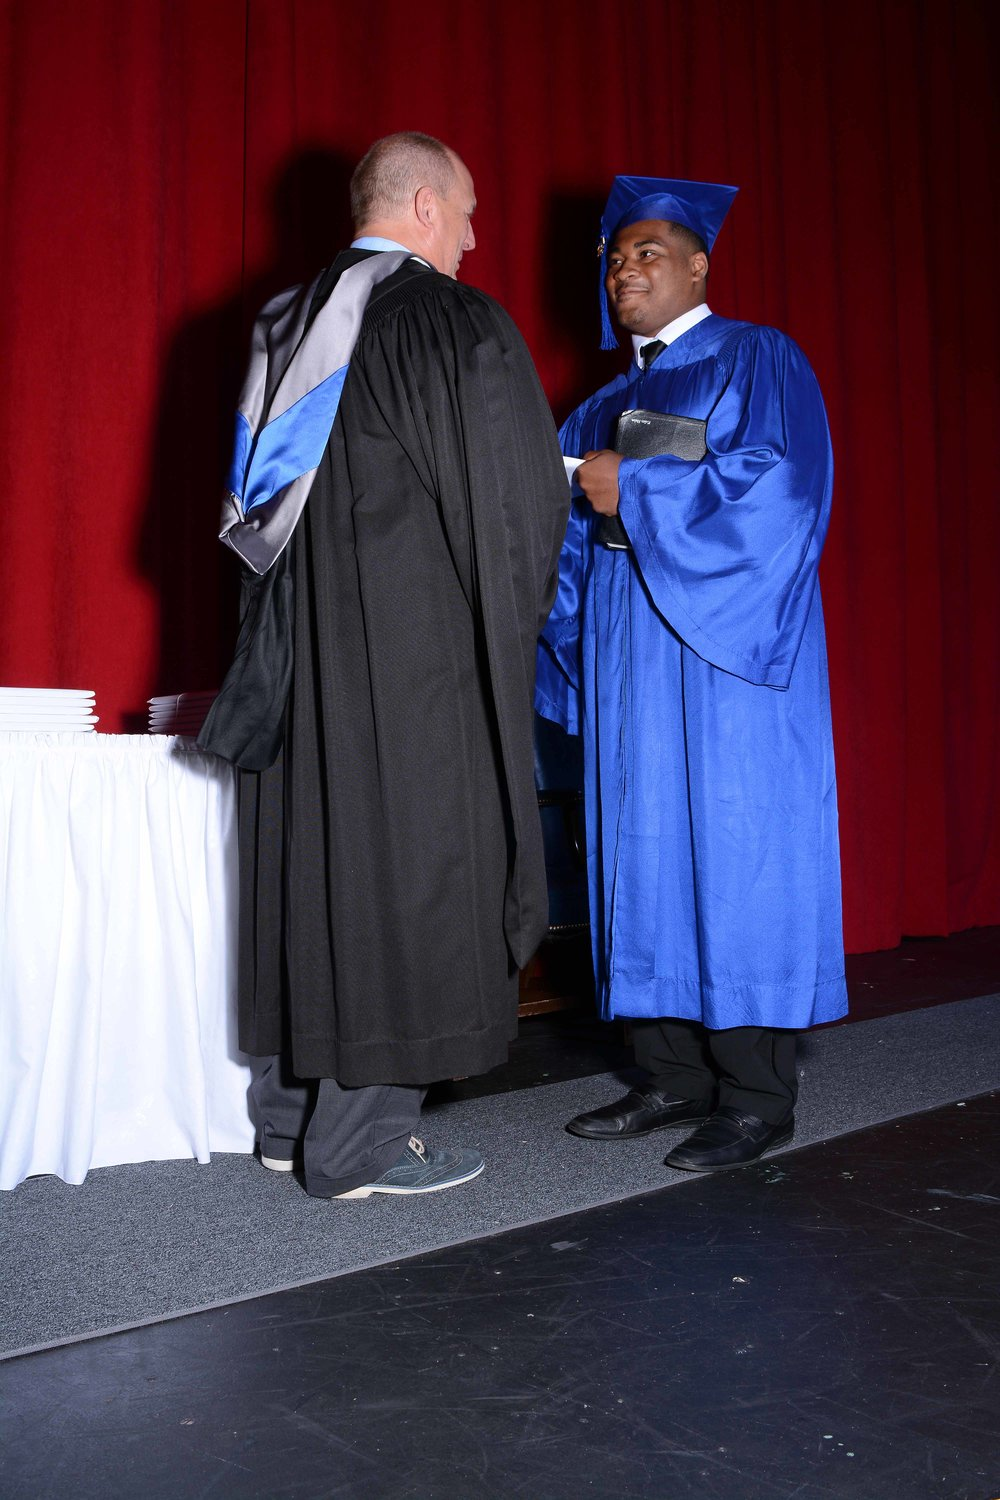 May14 Commencement155.jpg